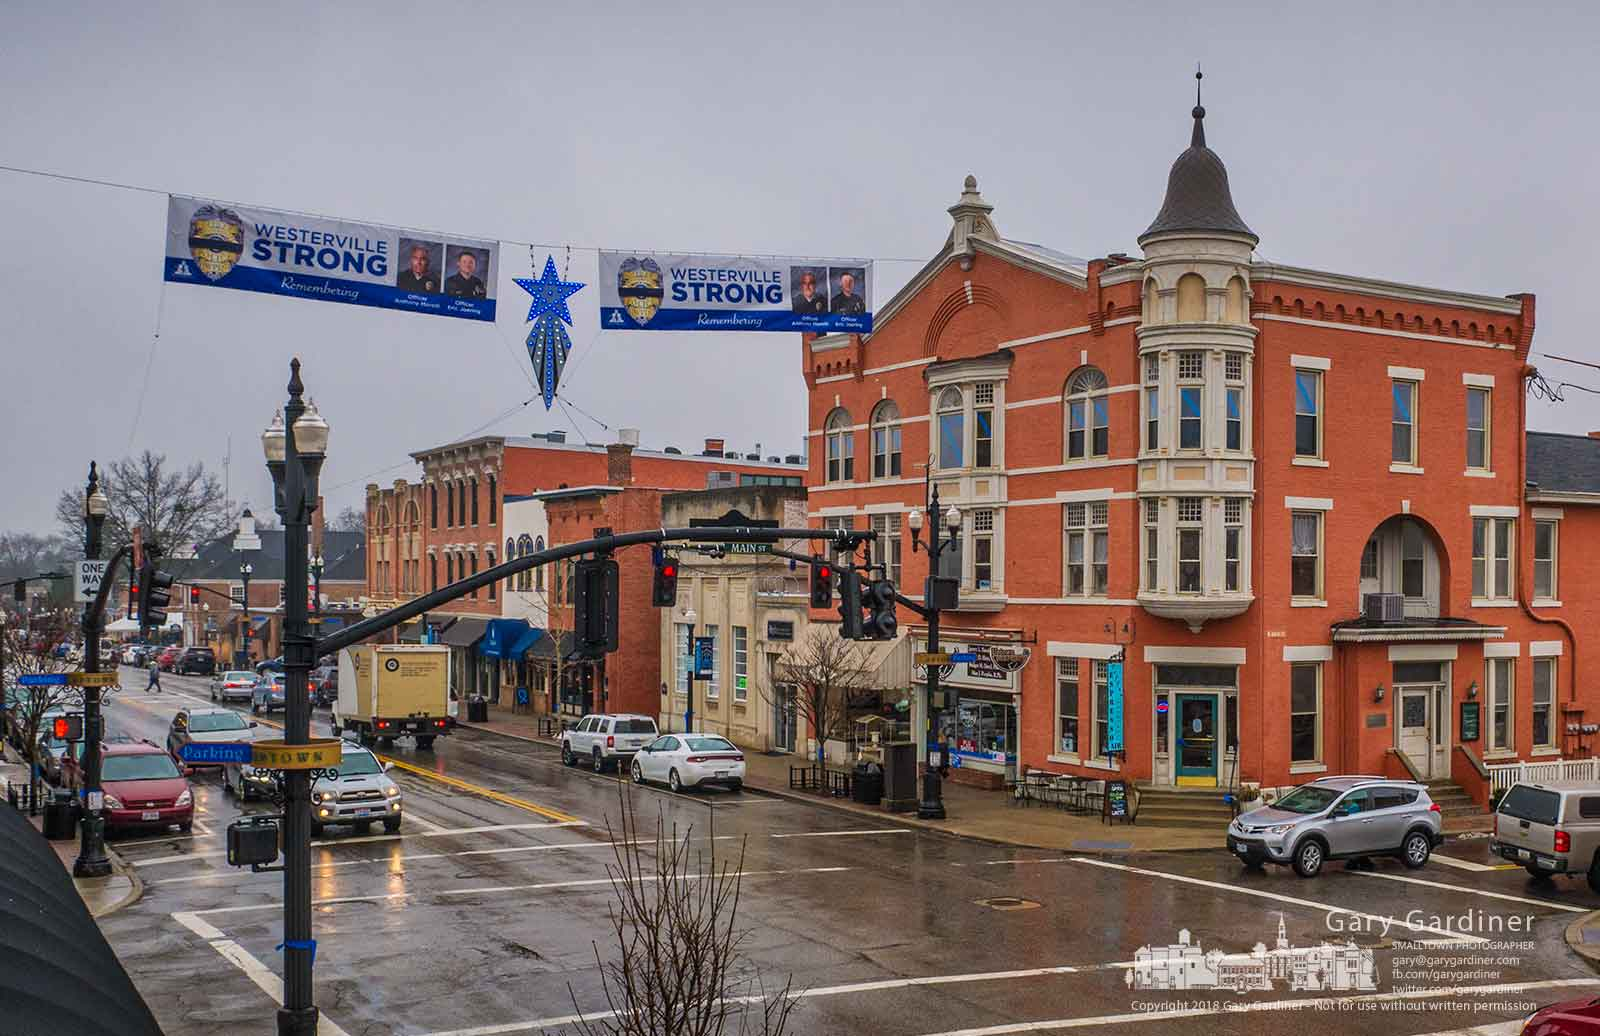 Banners honoring Westerville Police Officers Anthony Morelli and Eric Joering hang on either side of the Christmas Star lit with blue lights at State and Main Streets in Westerville. My FinalPhotofor Feb. 14, 2018.